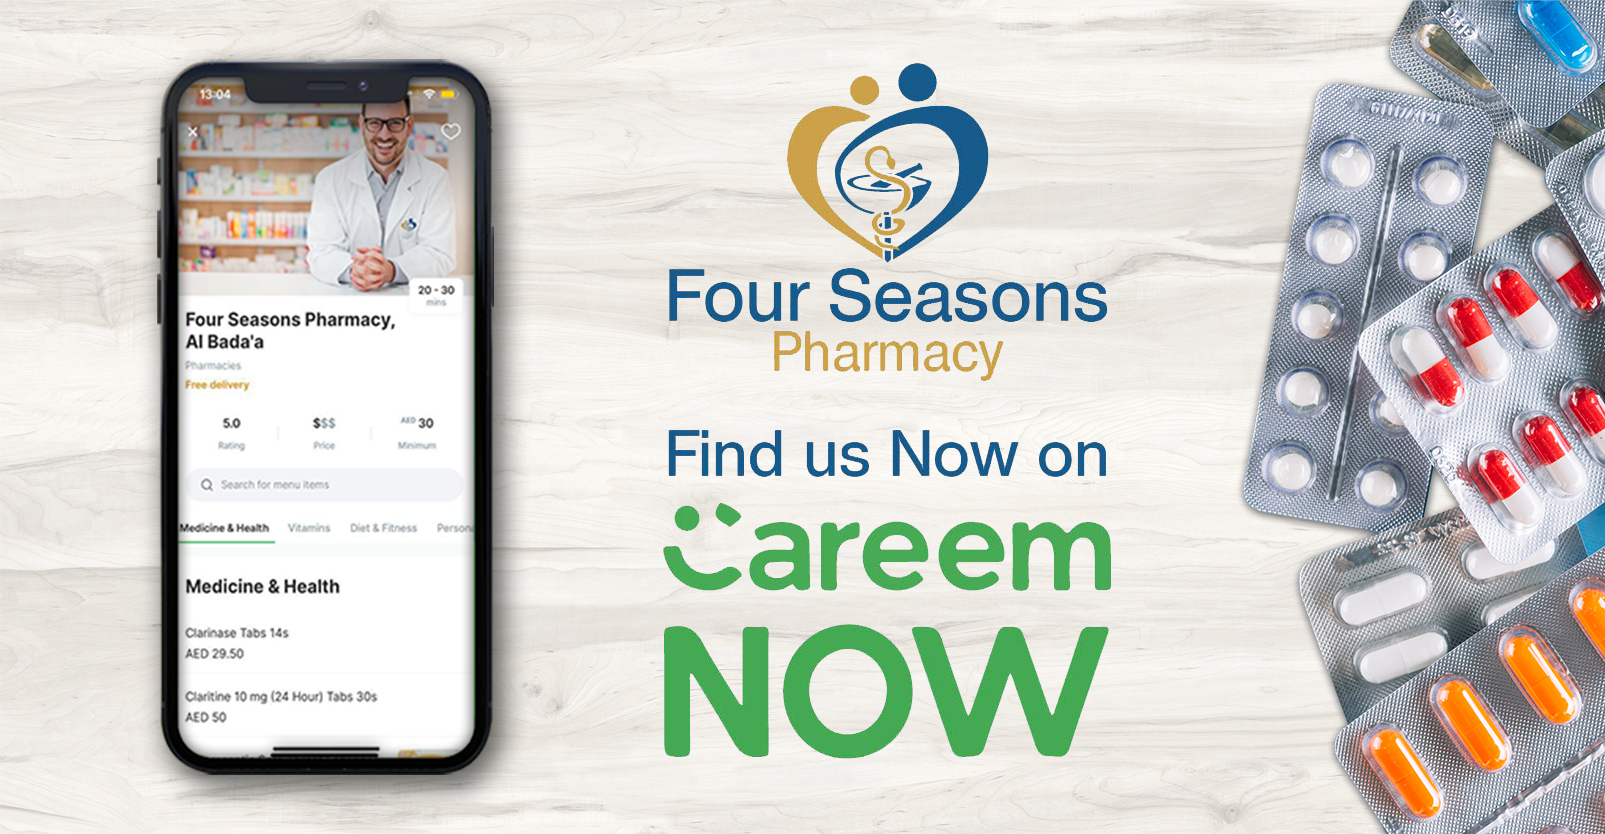 Get prompt delivery in under 60 minutes with CareemNOW.